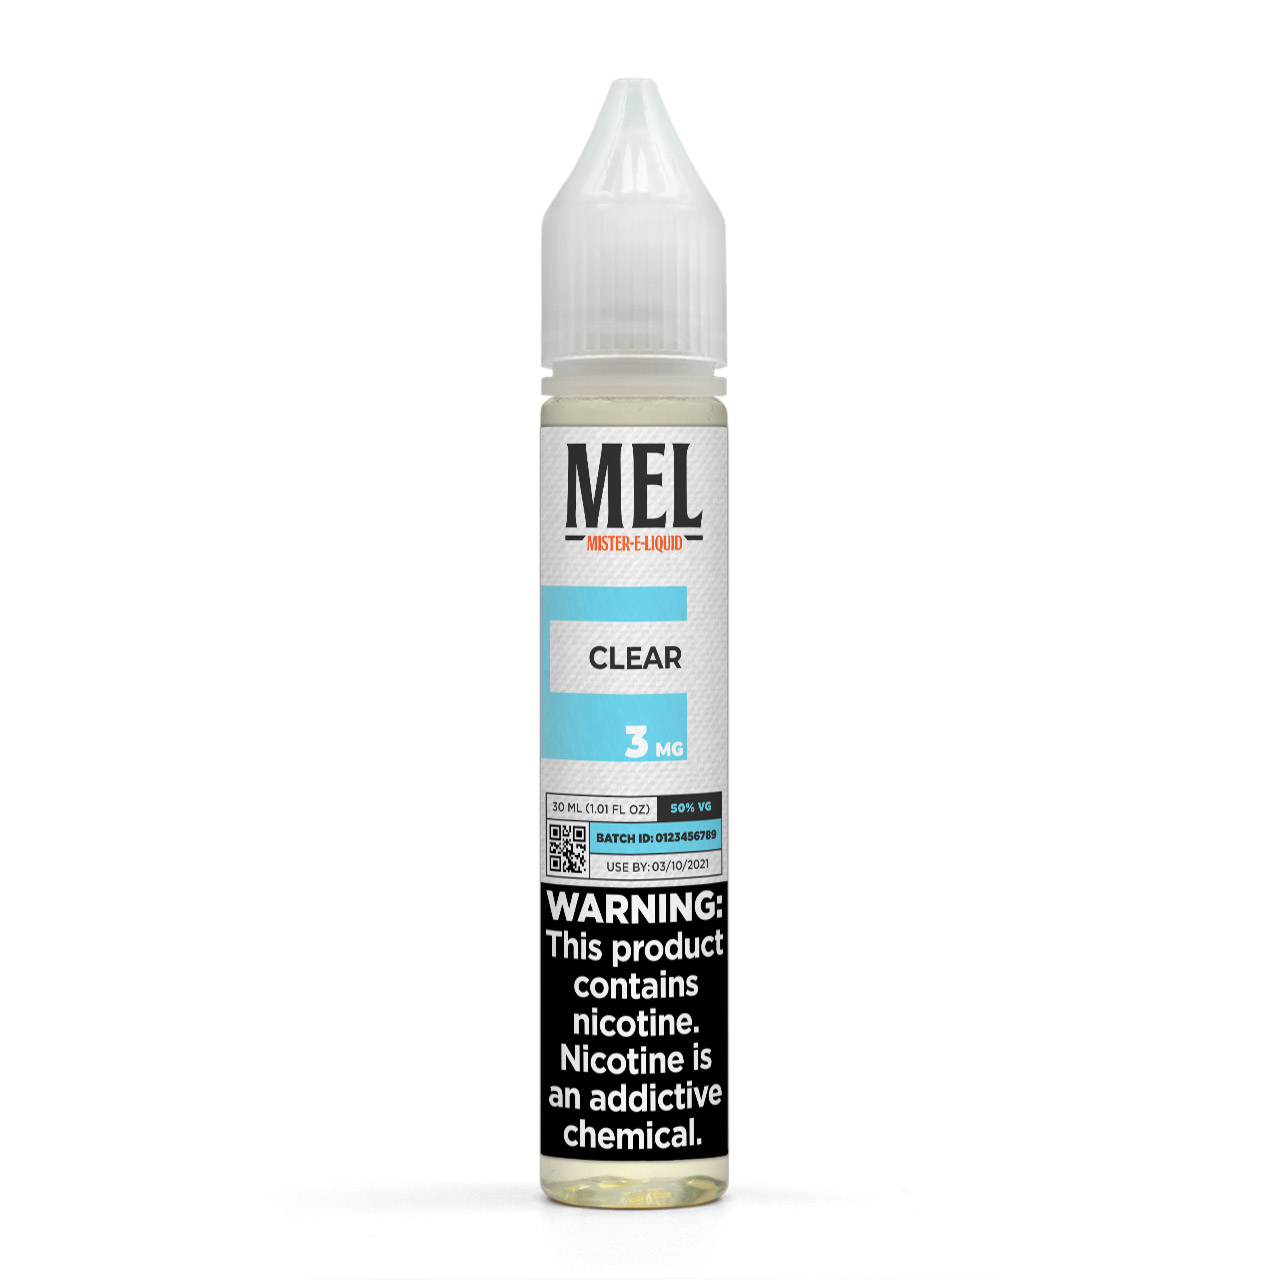 MEL Clear Vape Juice, 3 mg